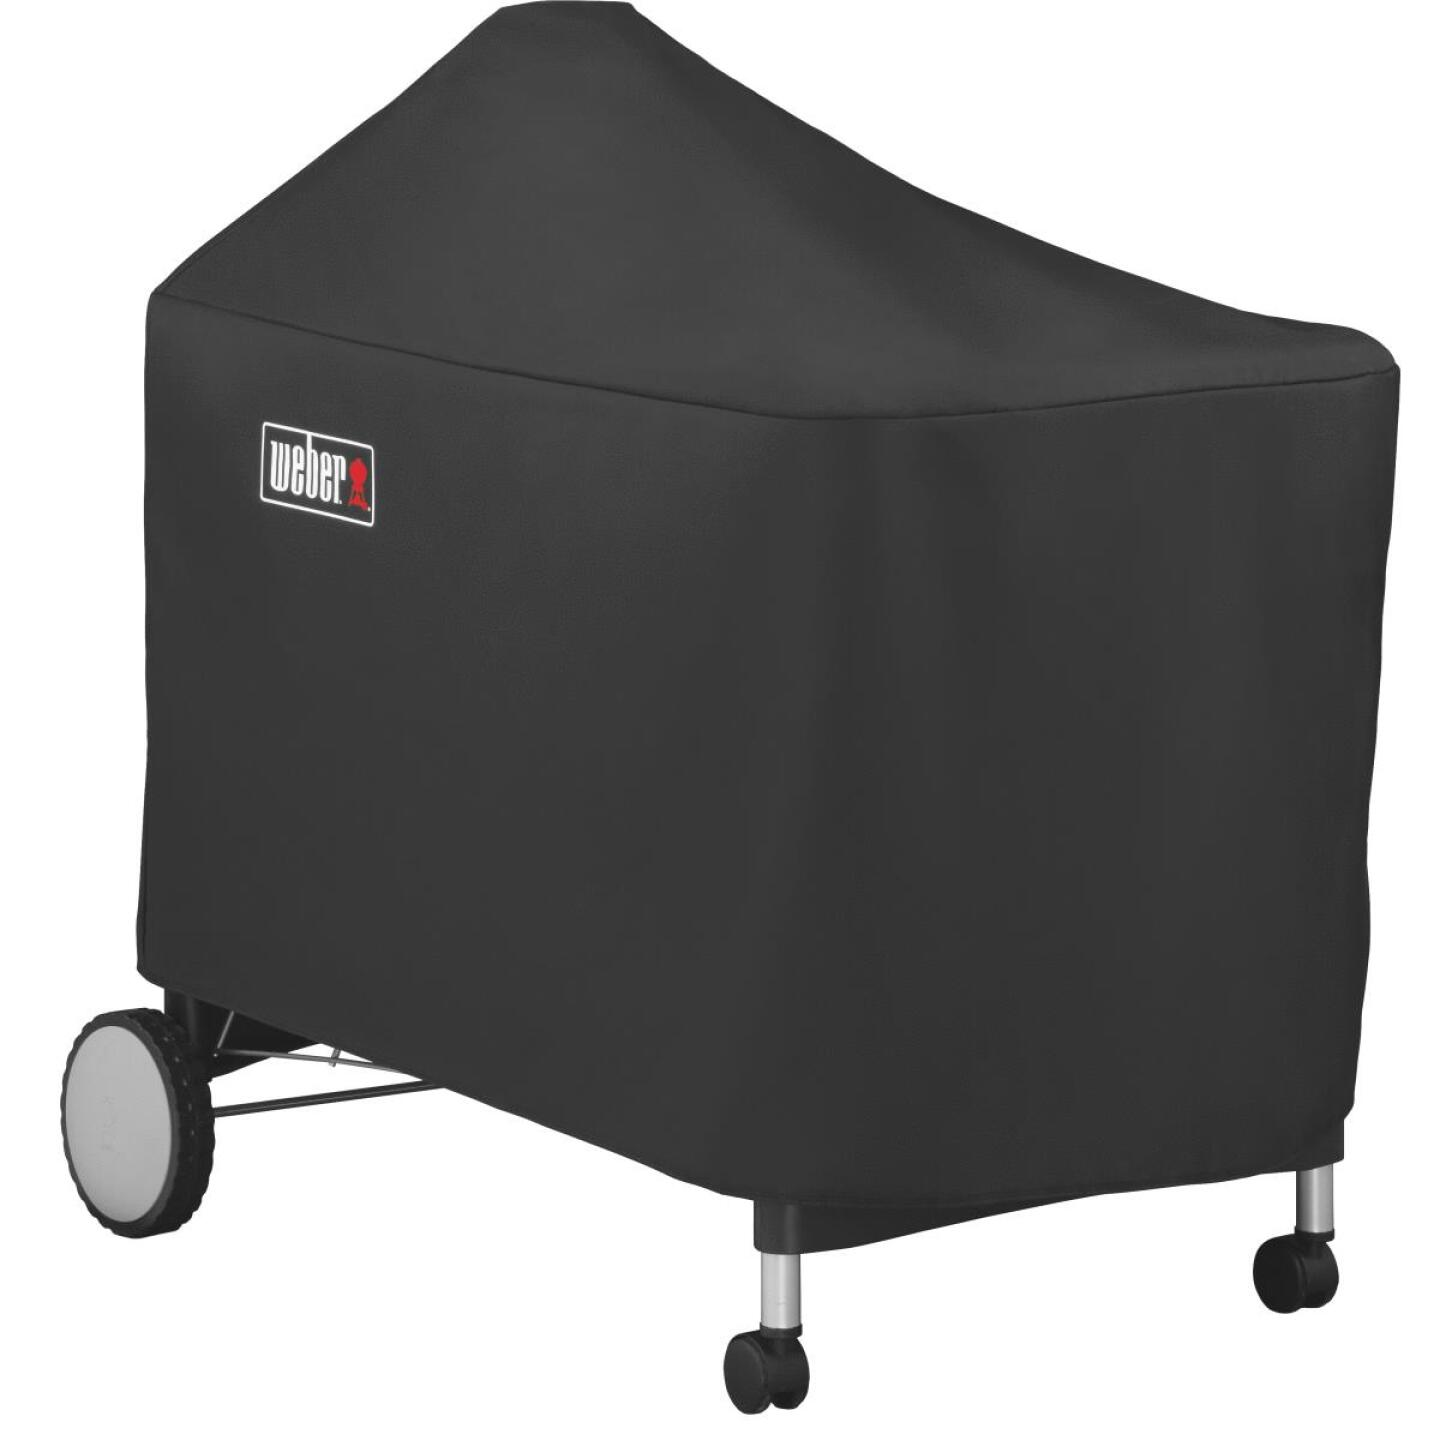 Weber Performer Premium Deluxe 49 In. Black Polyester Grill Cover Image 4